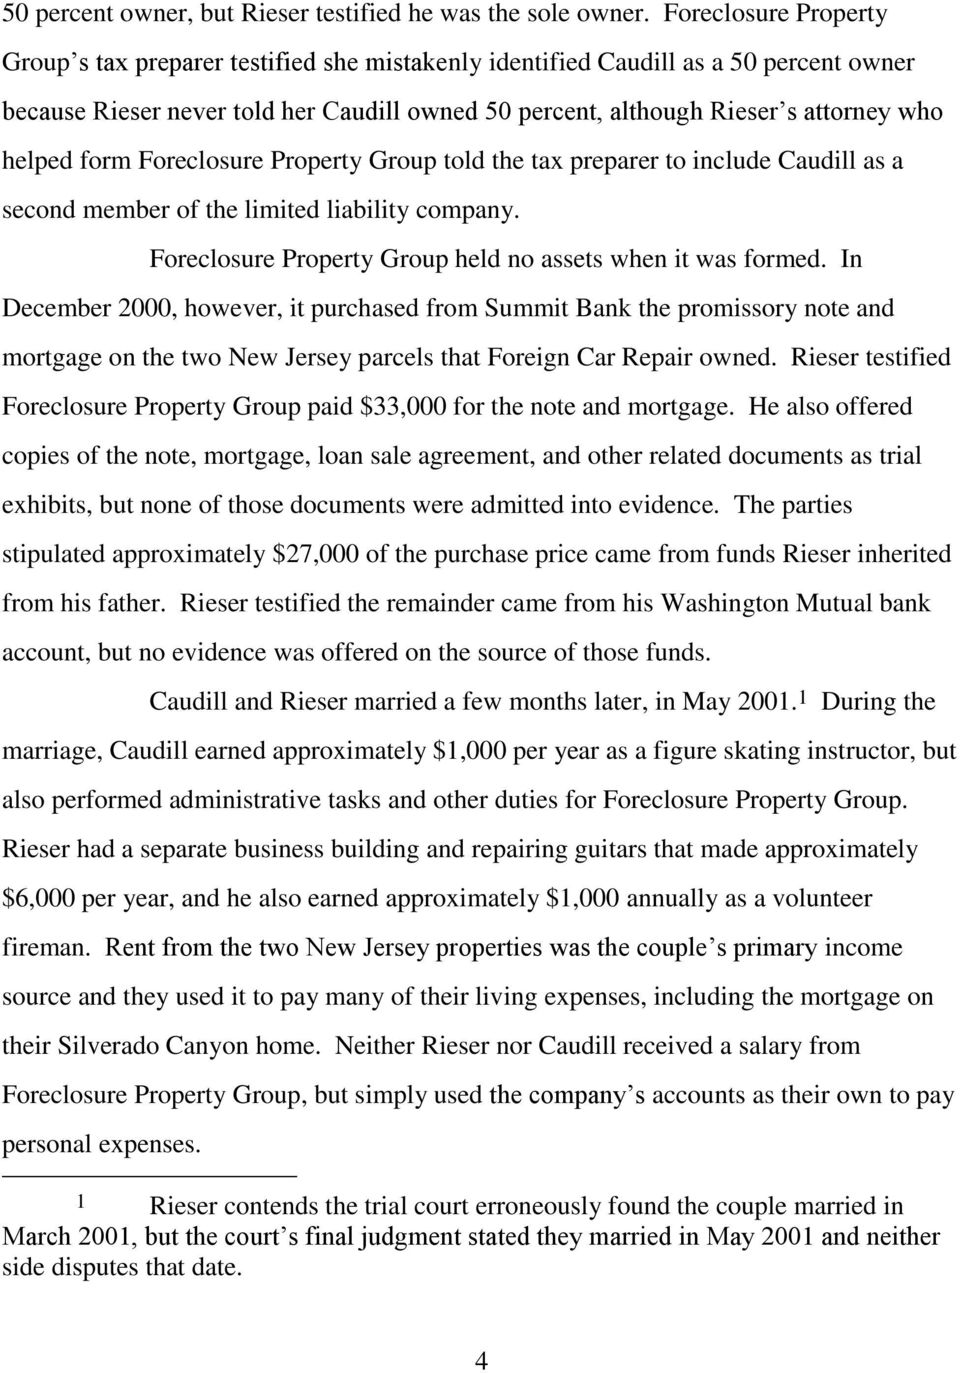 helped form Foreclosure Property Group told the tax preparer to include Caudill as a second member of the limited liability company. Foreclosure Property Group held no assets when it was formed.